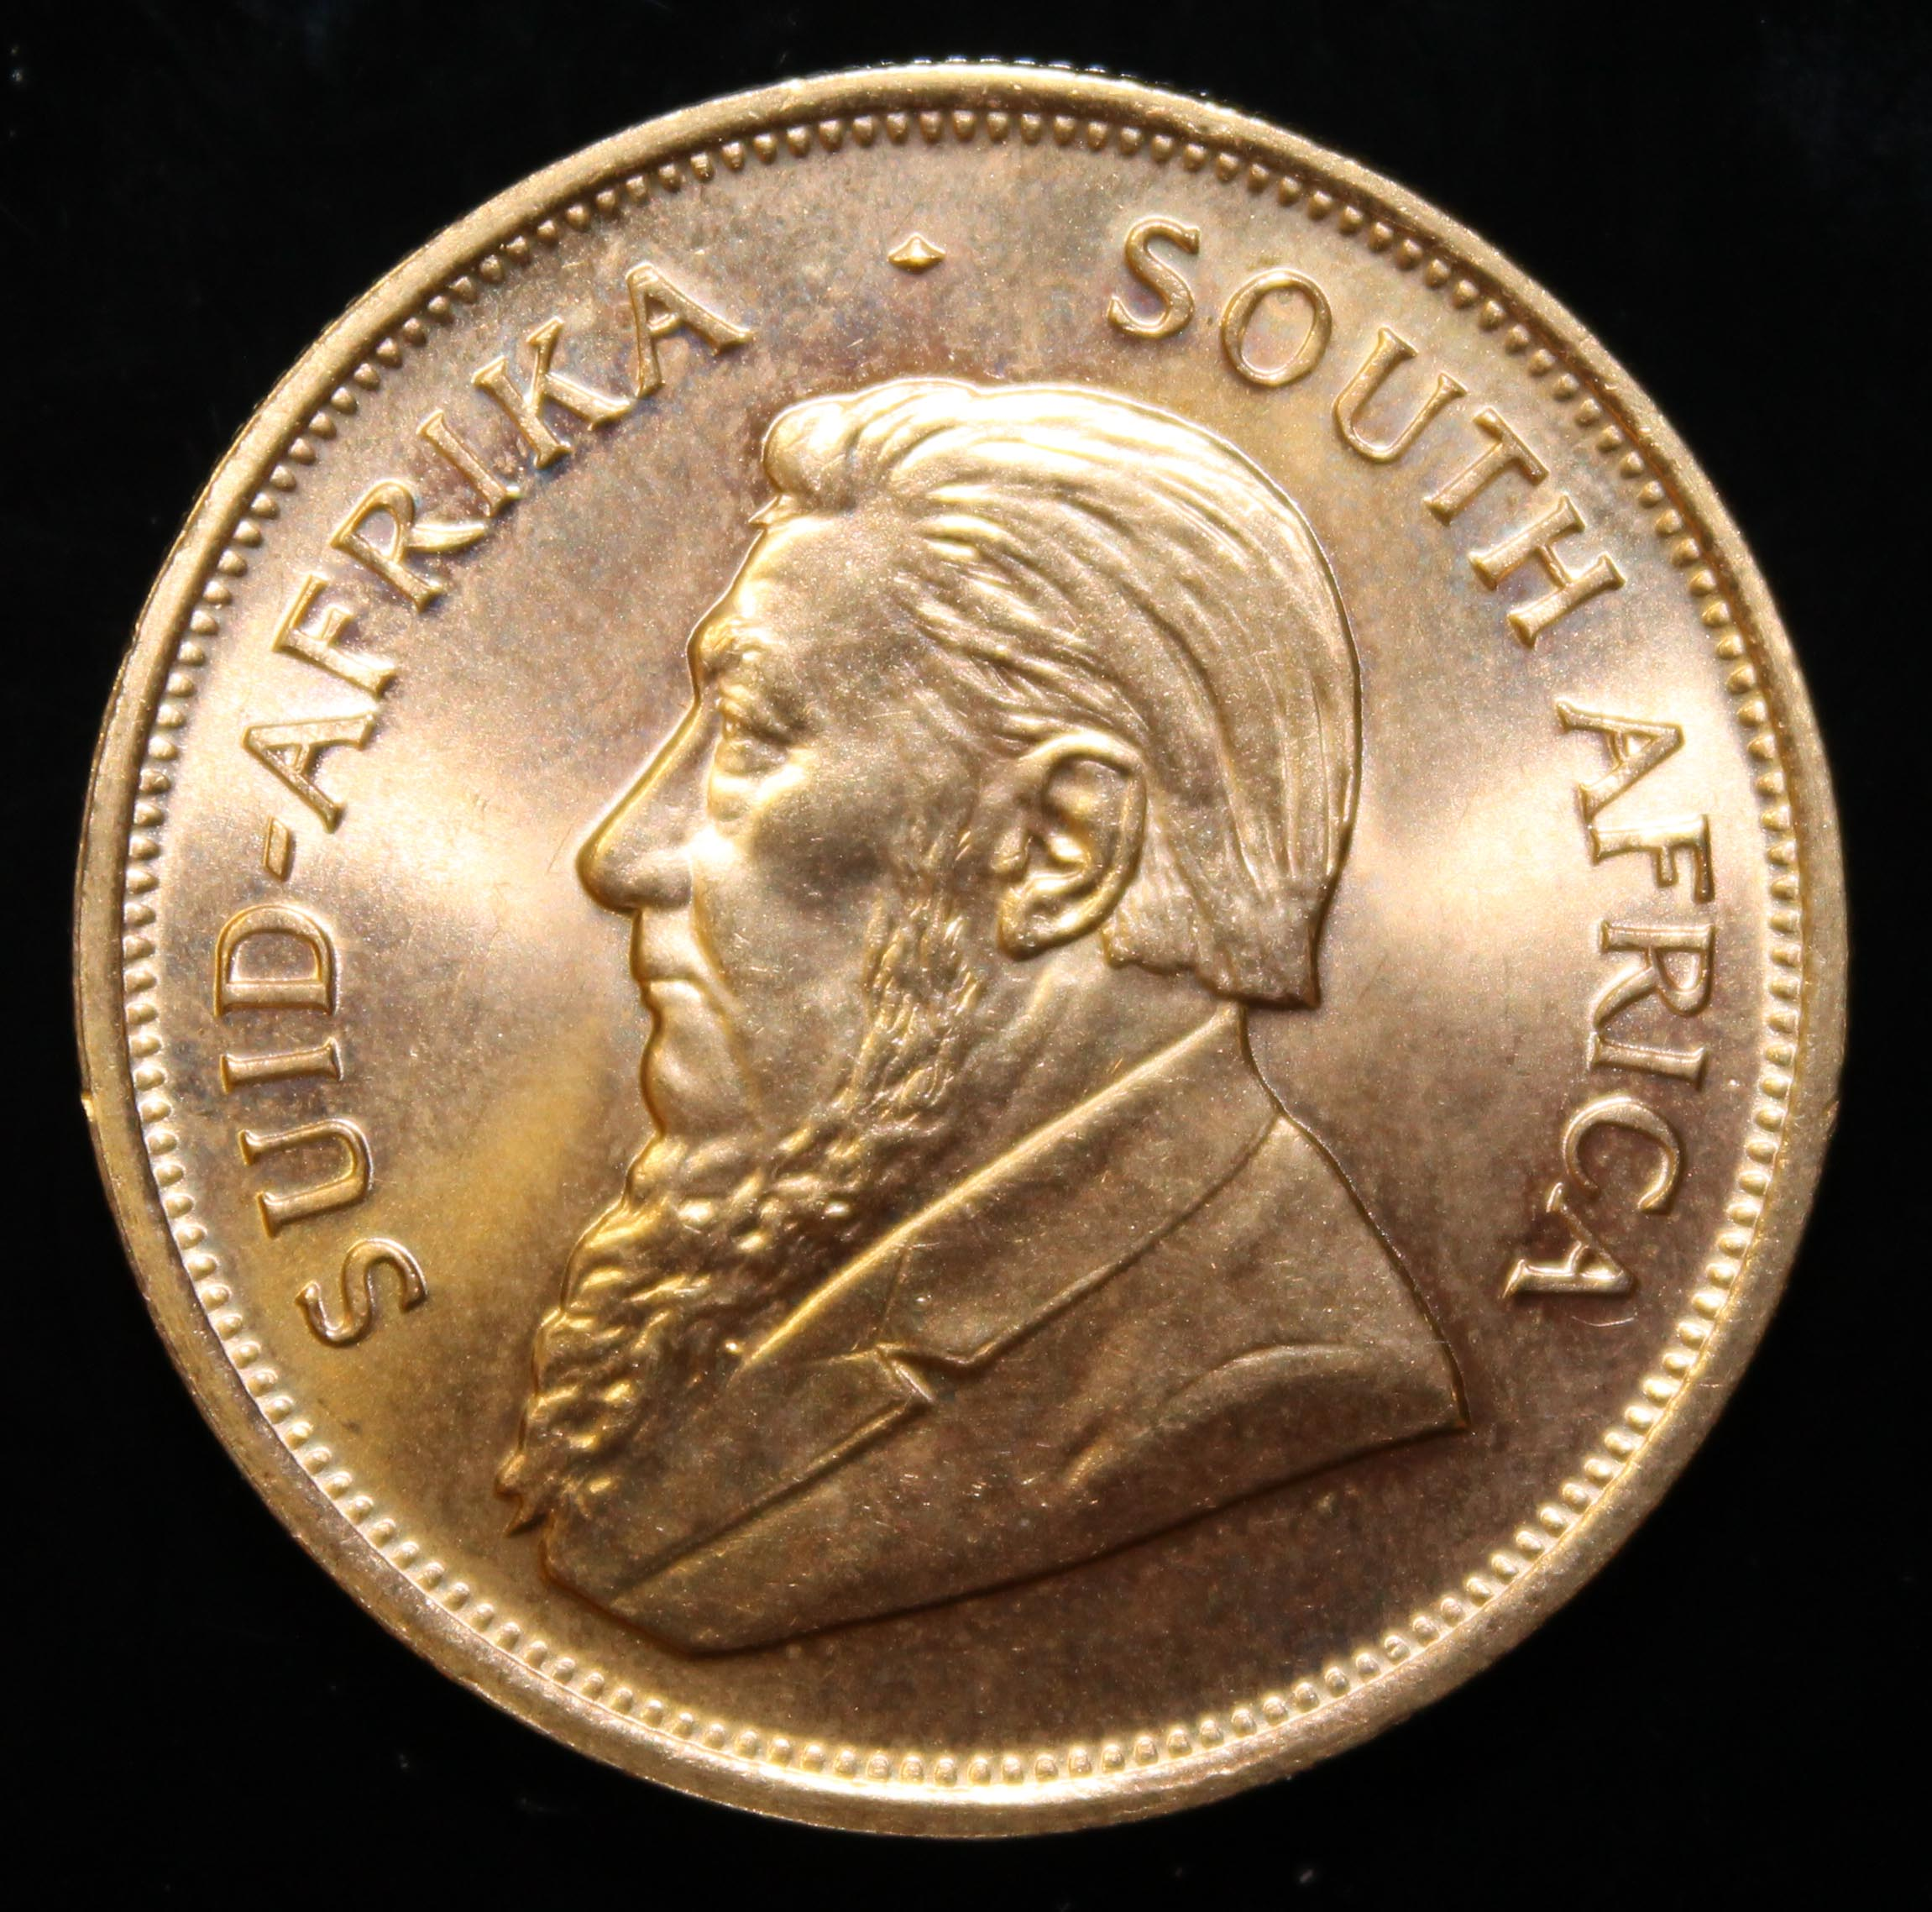 South Africa, 1983 Krugerrand, 1 oz. fine gold (91.67%) ONLY 10% BUYER'S PREMIUM (INCLUSIVE OF